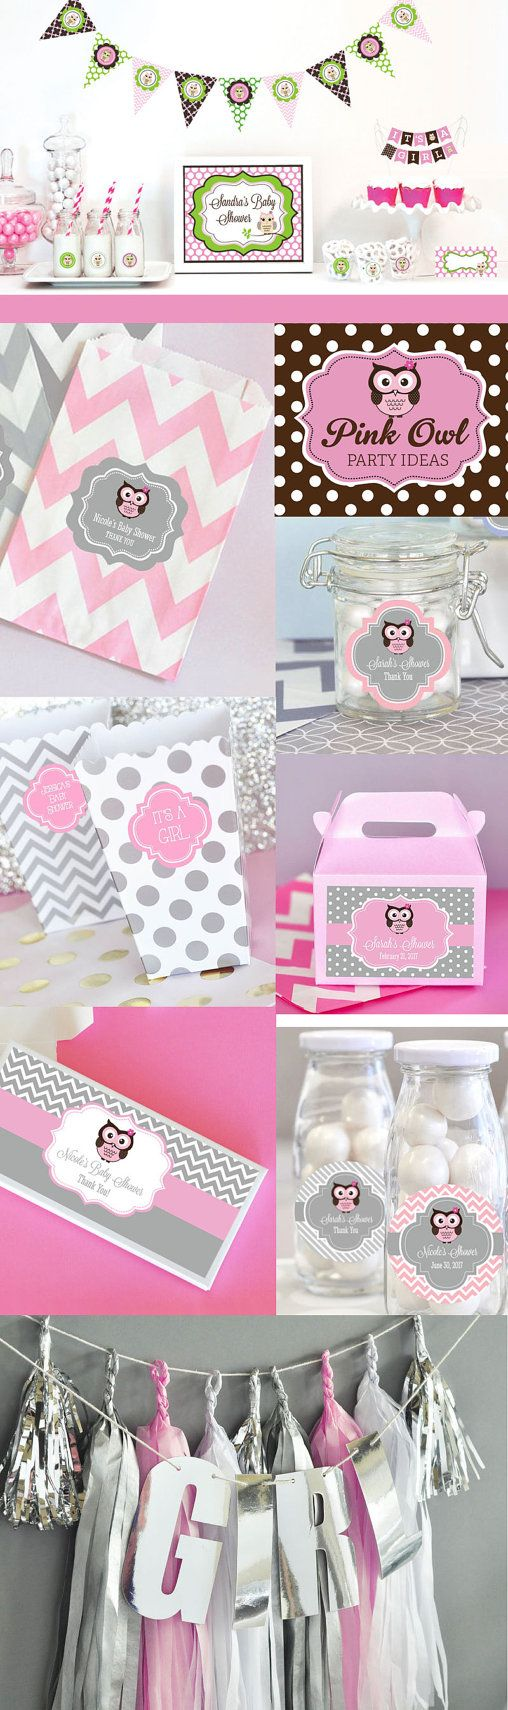 owl themed baby shower decor ideas for a pink owl girls baby shower